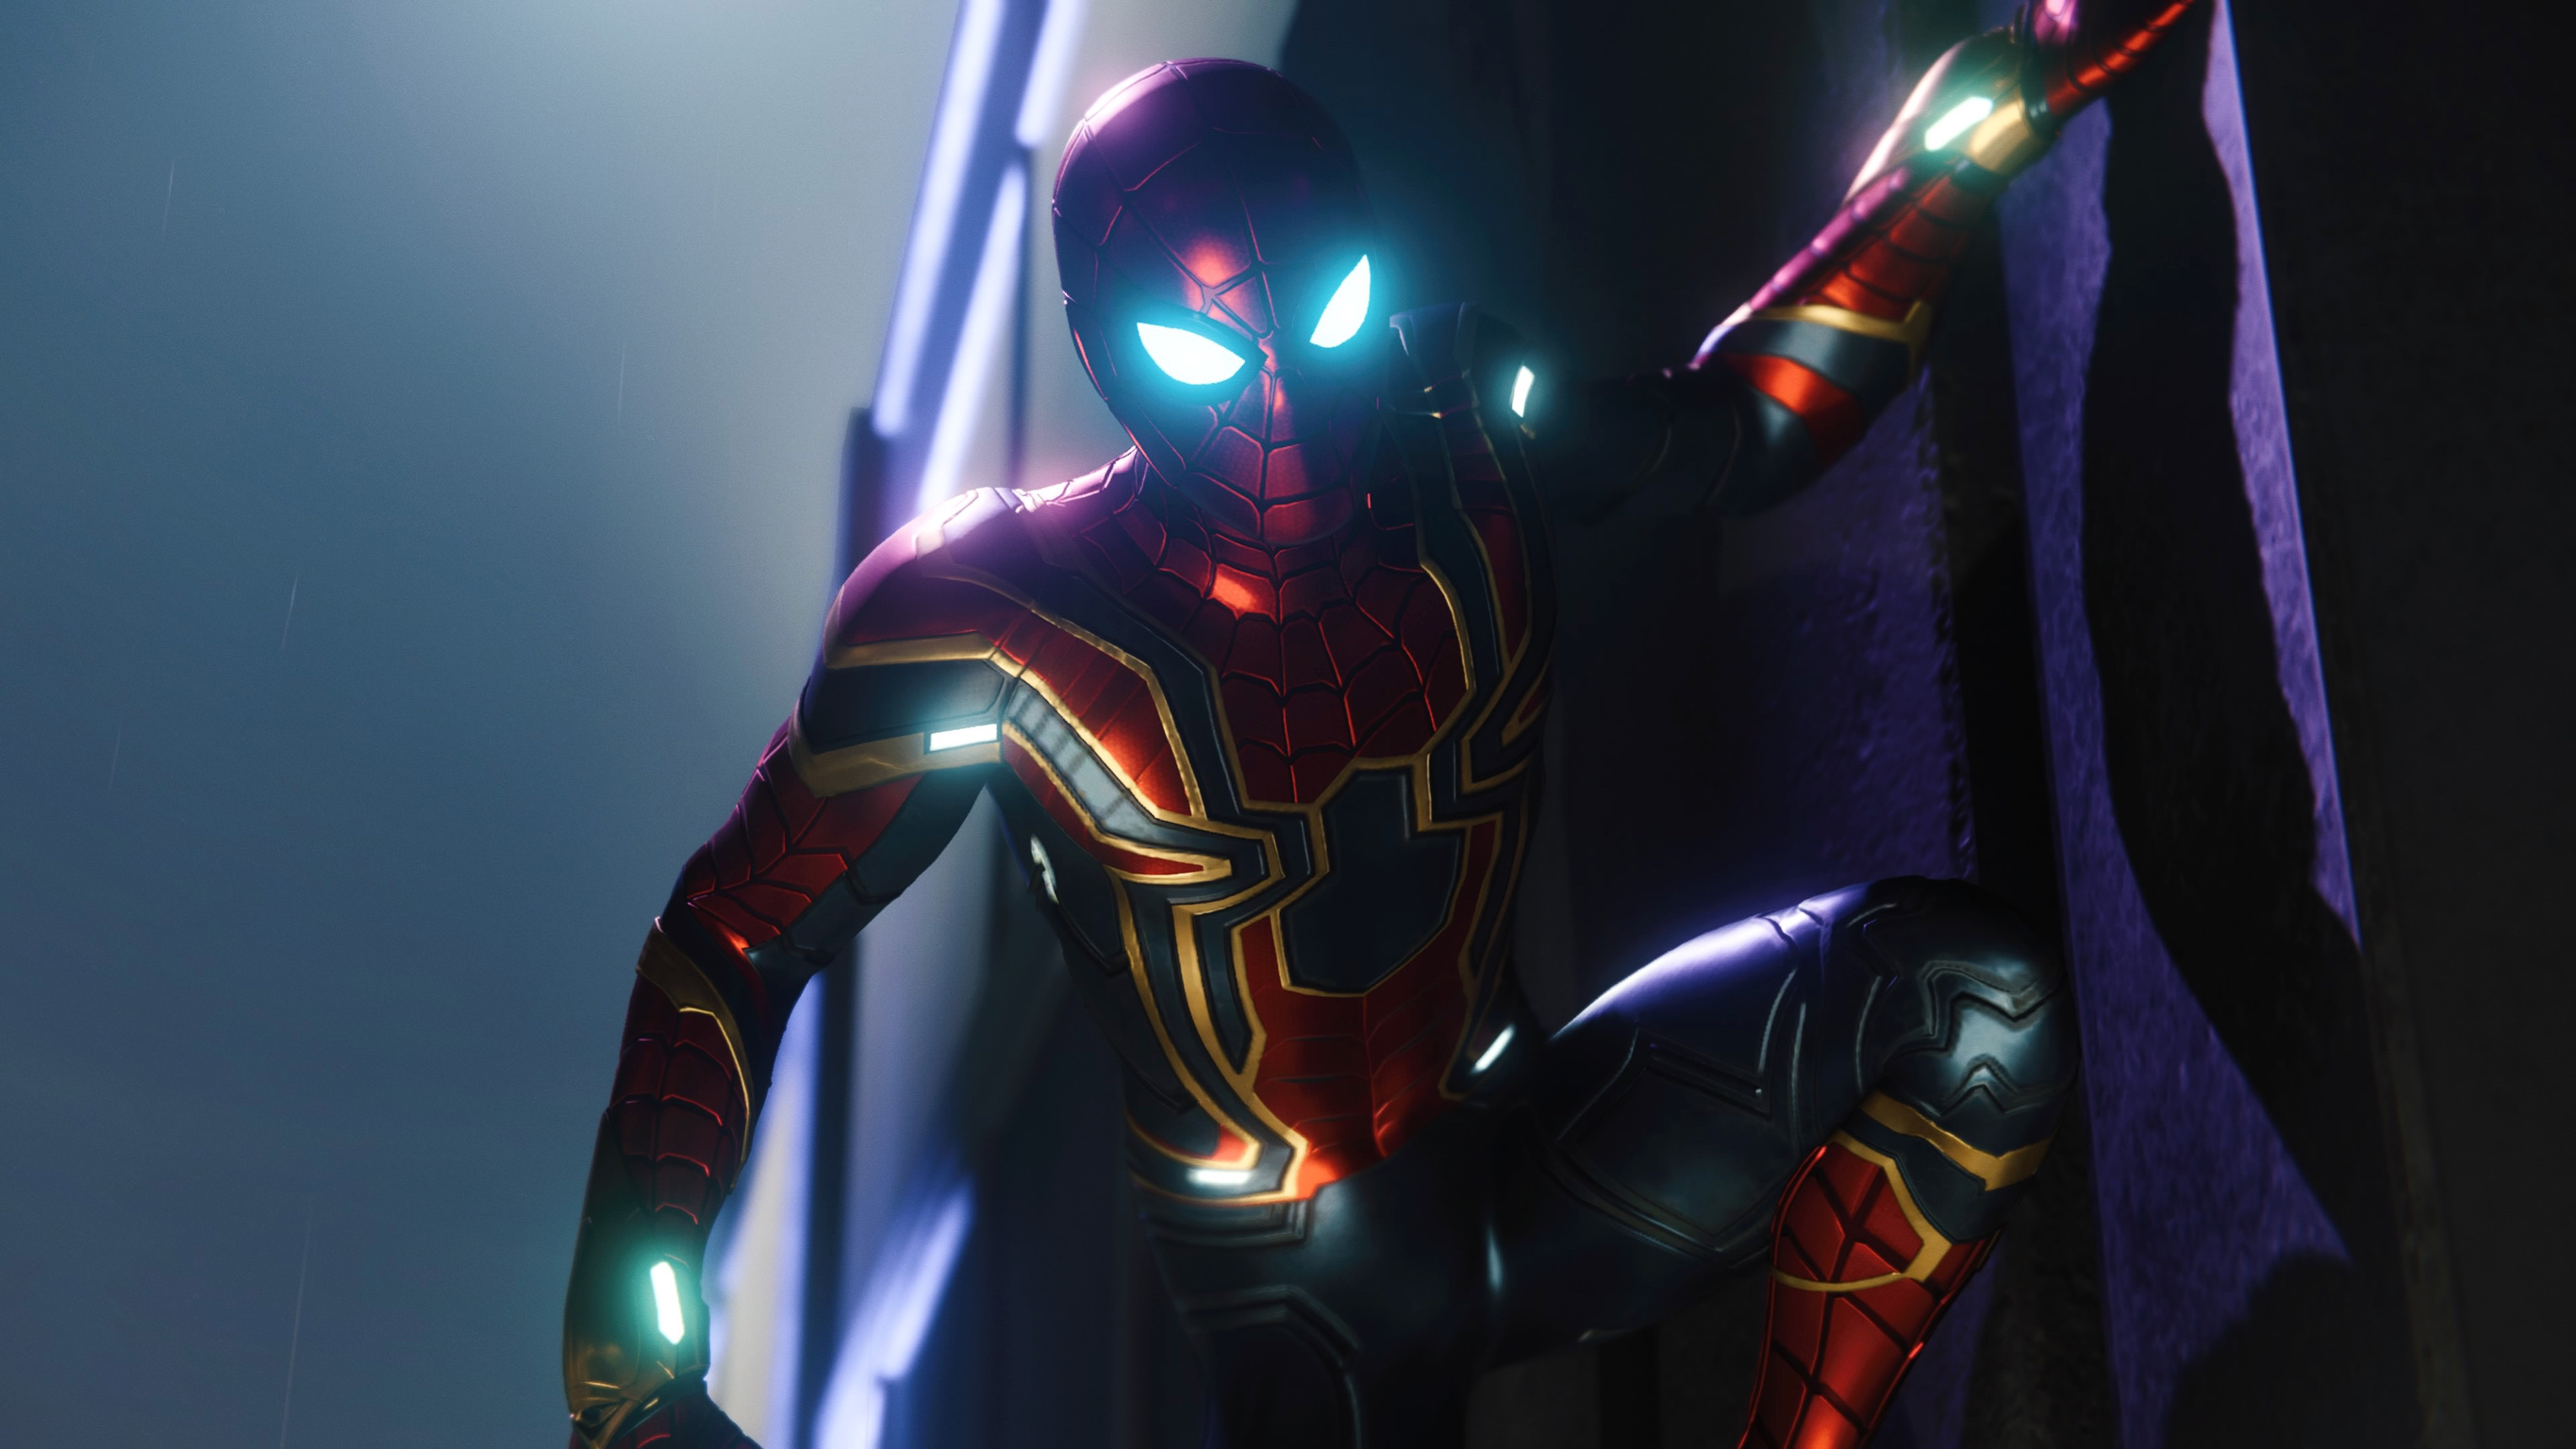 Spider-Man on the PS4 is a great example of AAA development working at its best